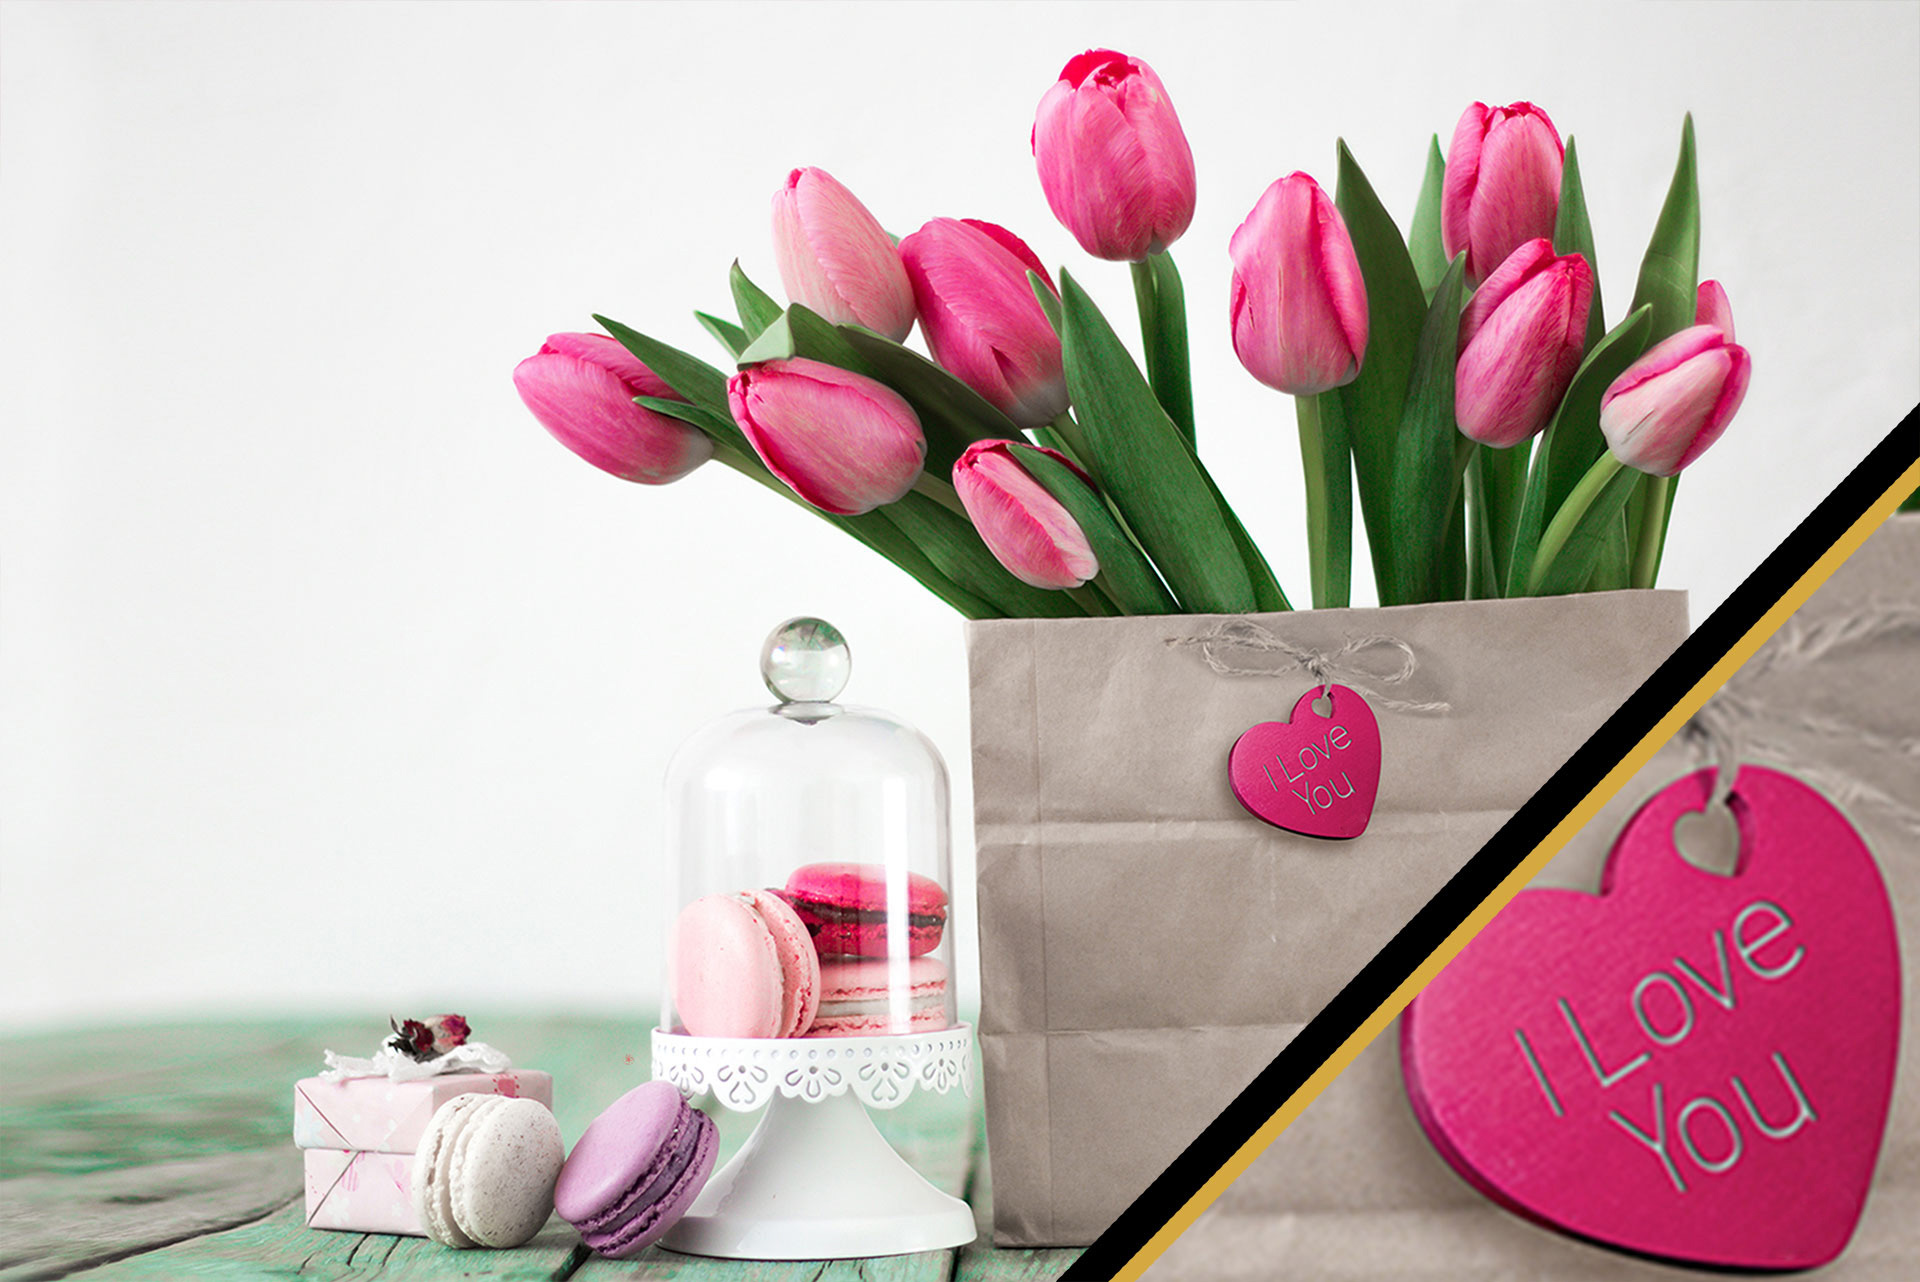 bouquet of flowers, pastries and gift with a personalized heart shape charm